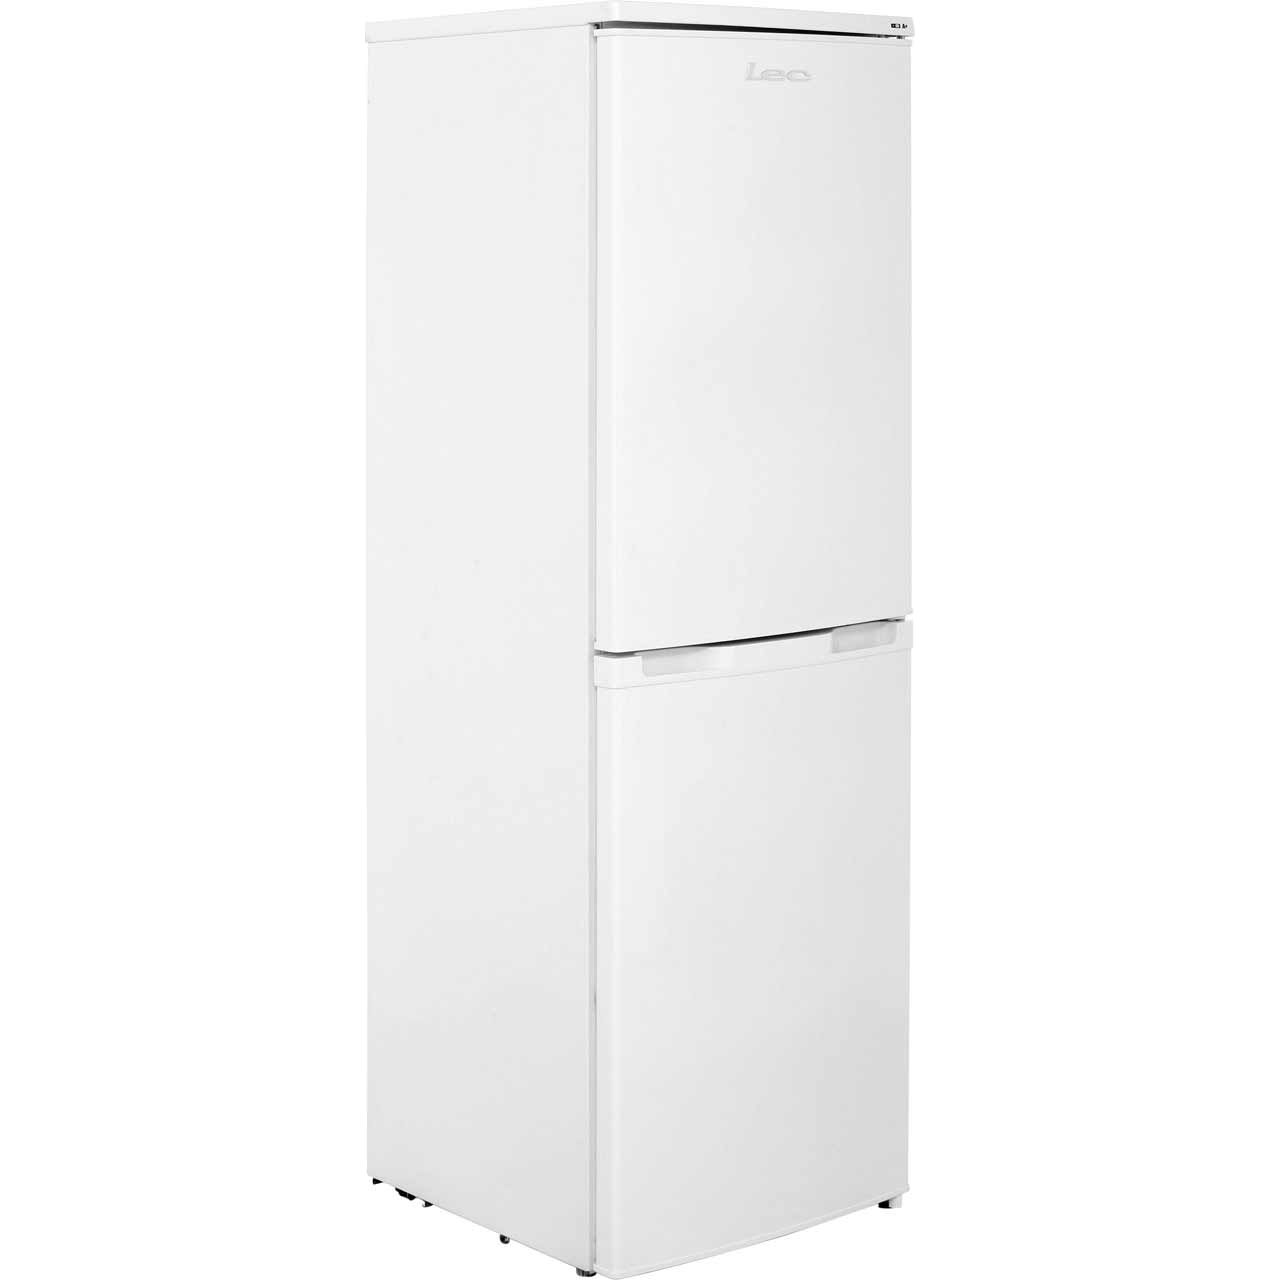 Lec TS50152W 60/40 Fridge Freezer - White